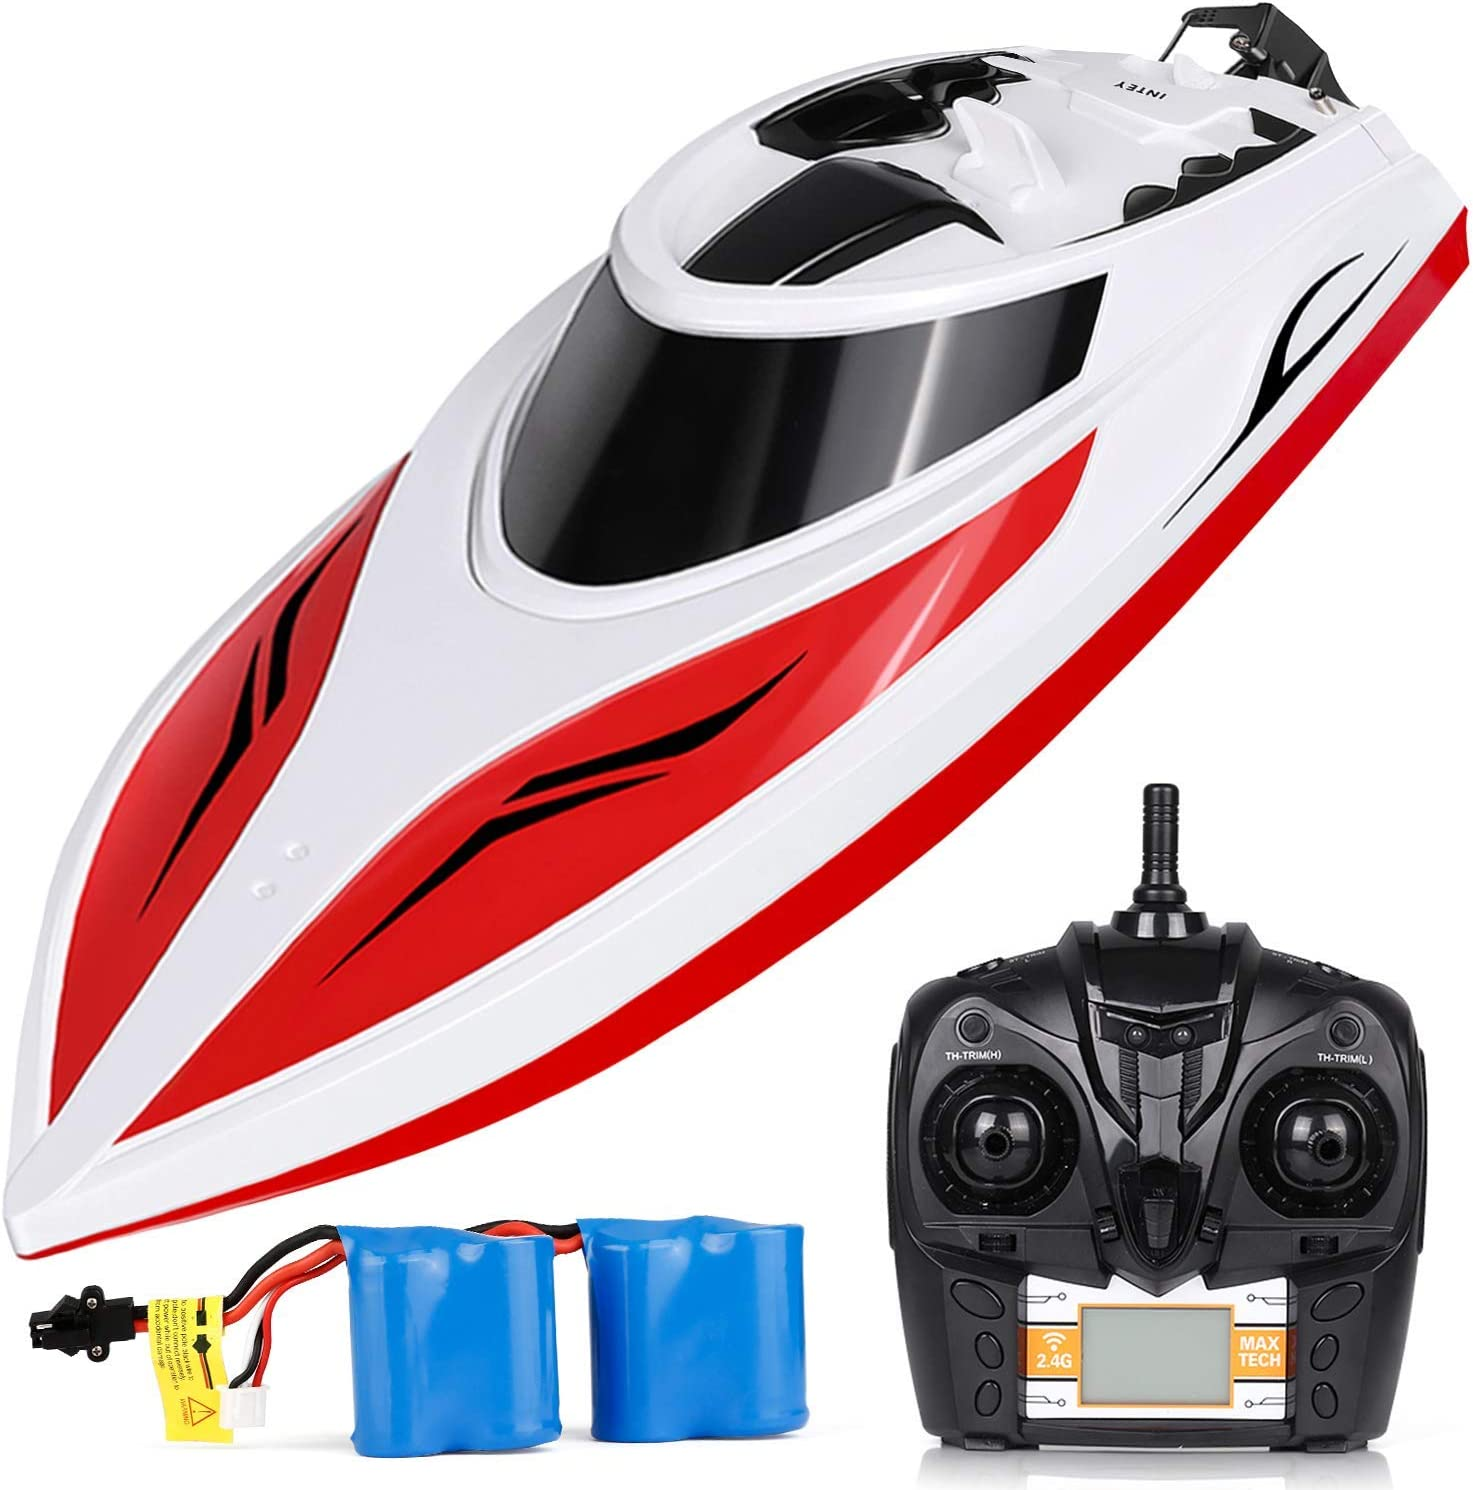 Top 8 Best Remote Control Boats For Beginners - 2020 (Best RC Boats) 8